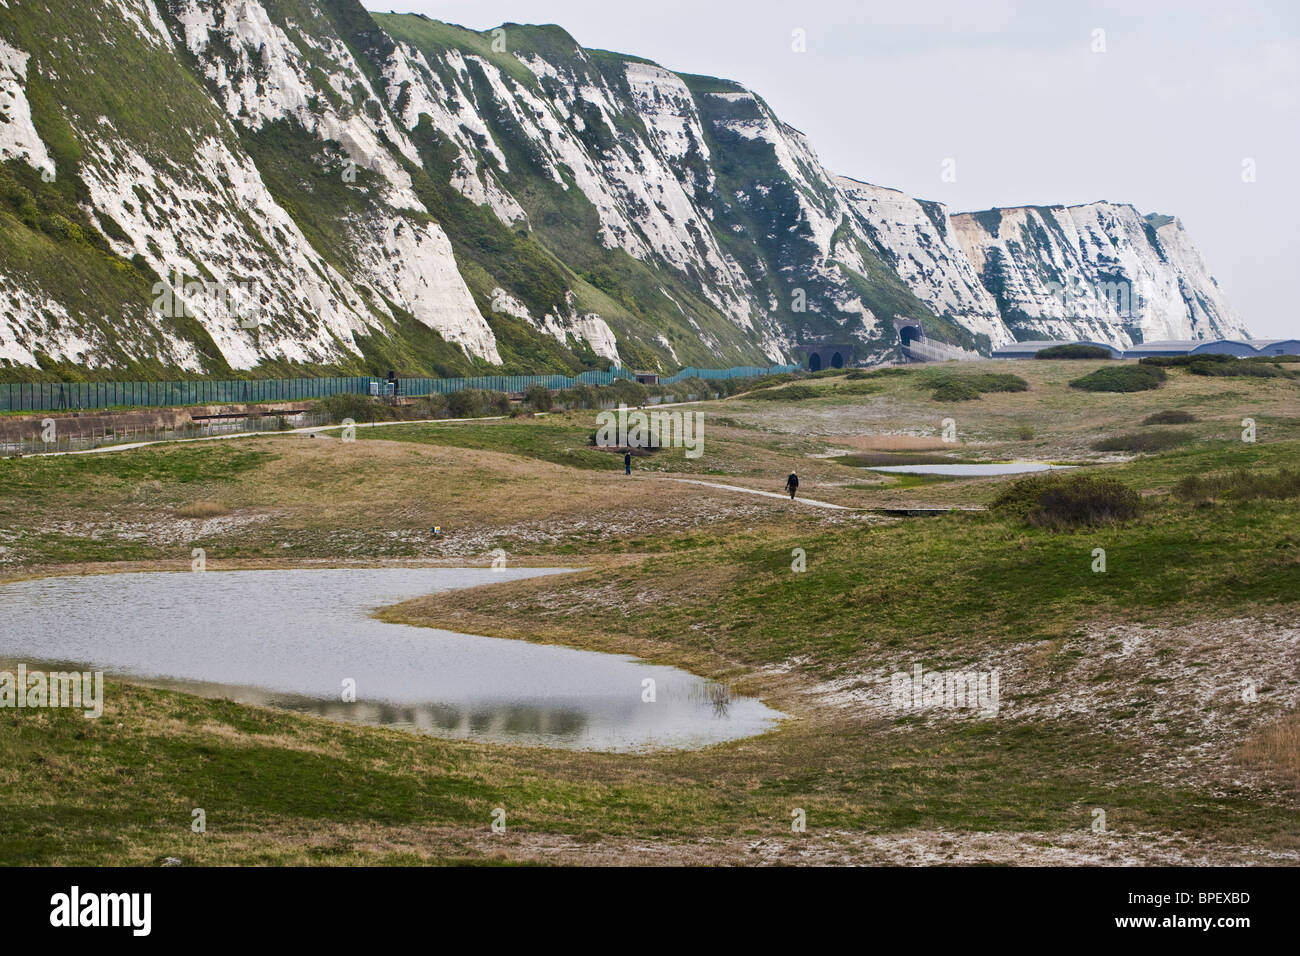 Samphire Hoe and the white cliffs near Folkestone and Dover on the Kent coast - Stock Image